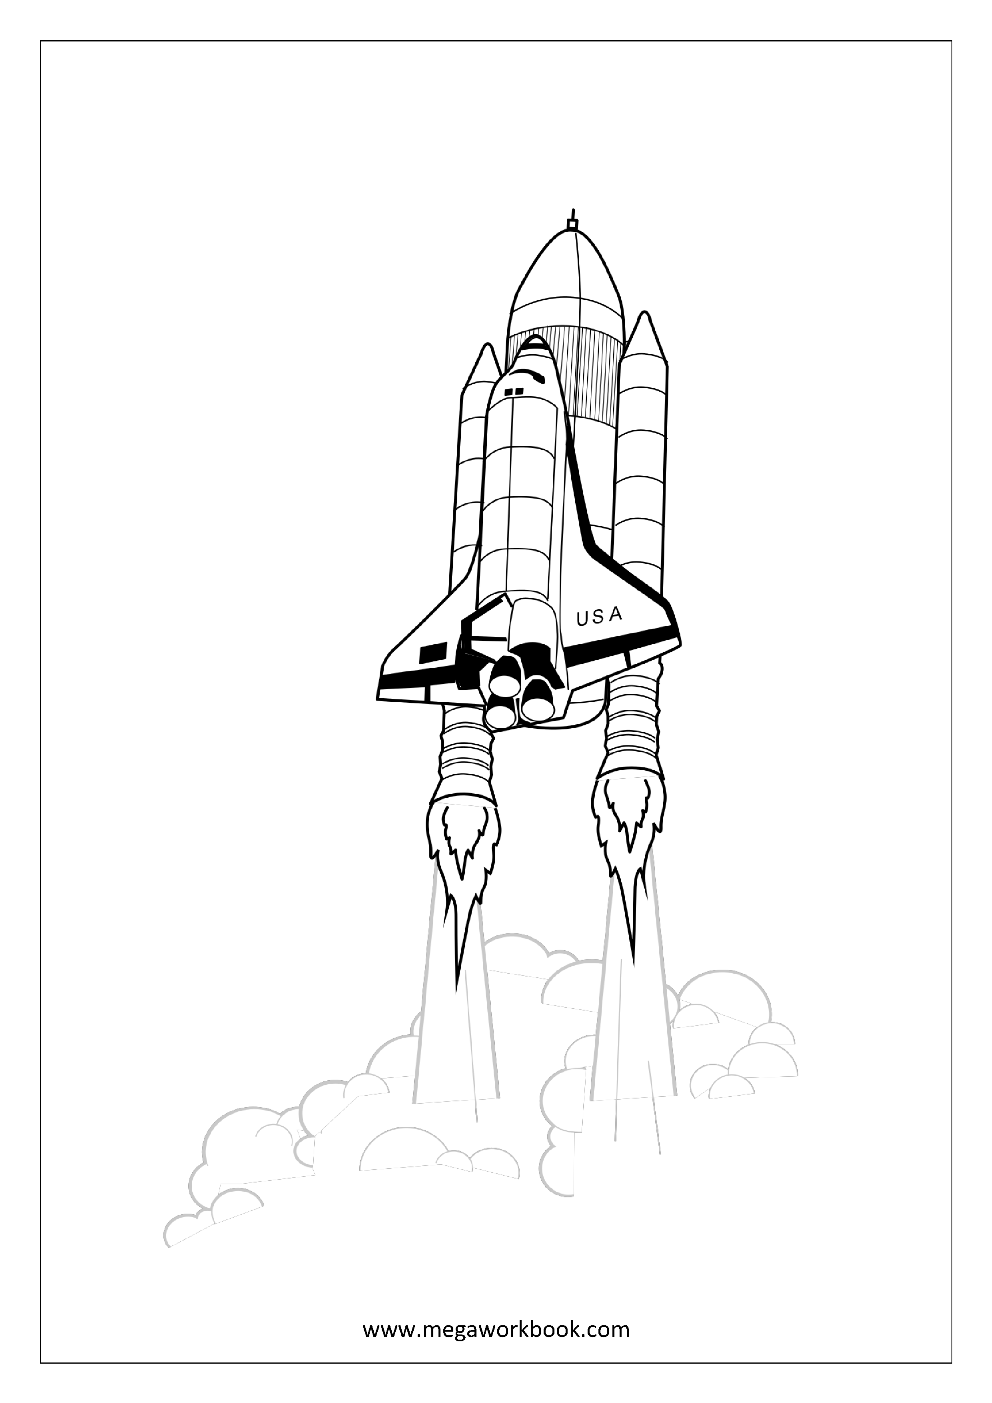 space shuttle coloring pages getcoloringpagescom - Nasa Space Shuttle Coloring Pages